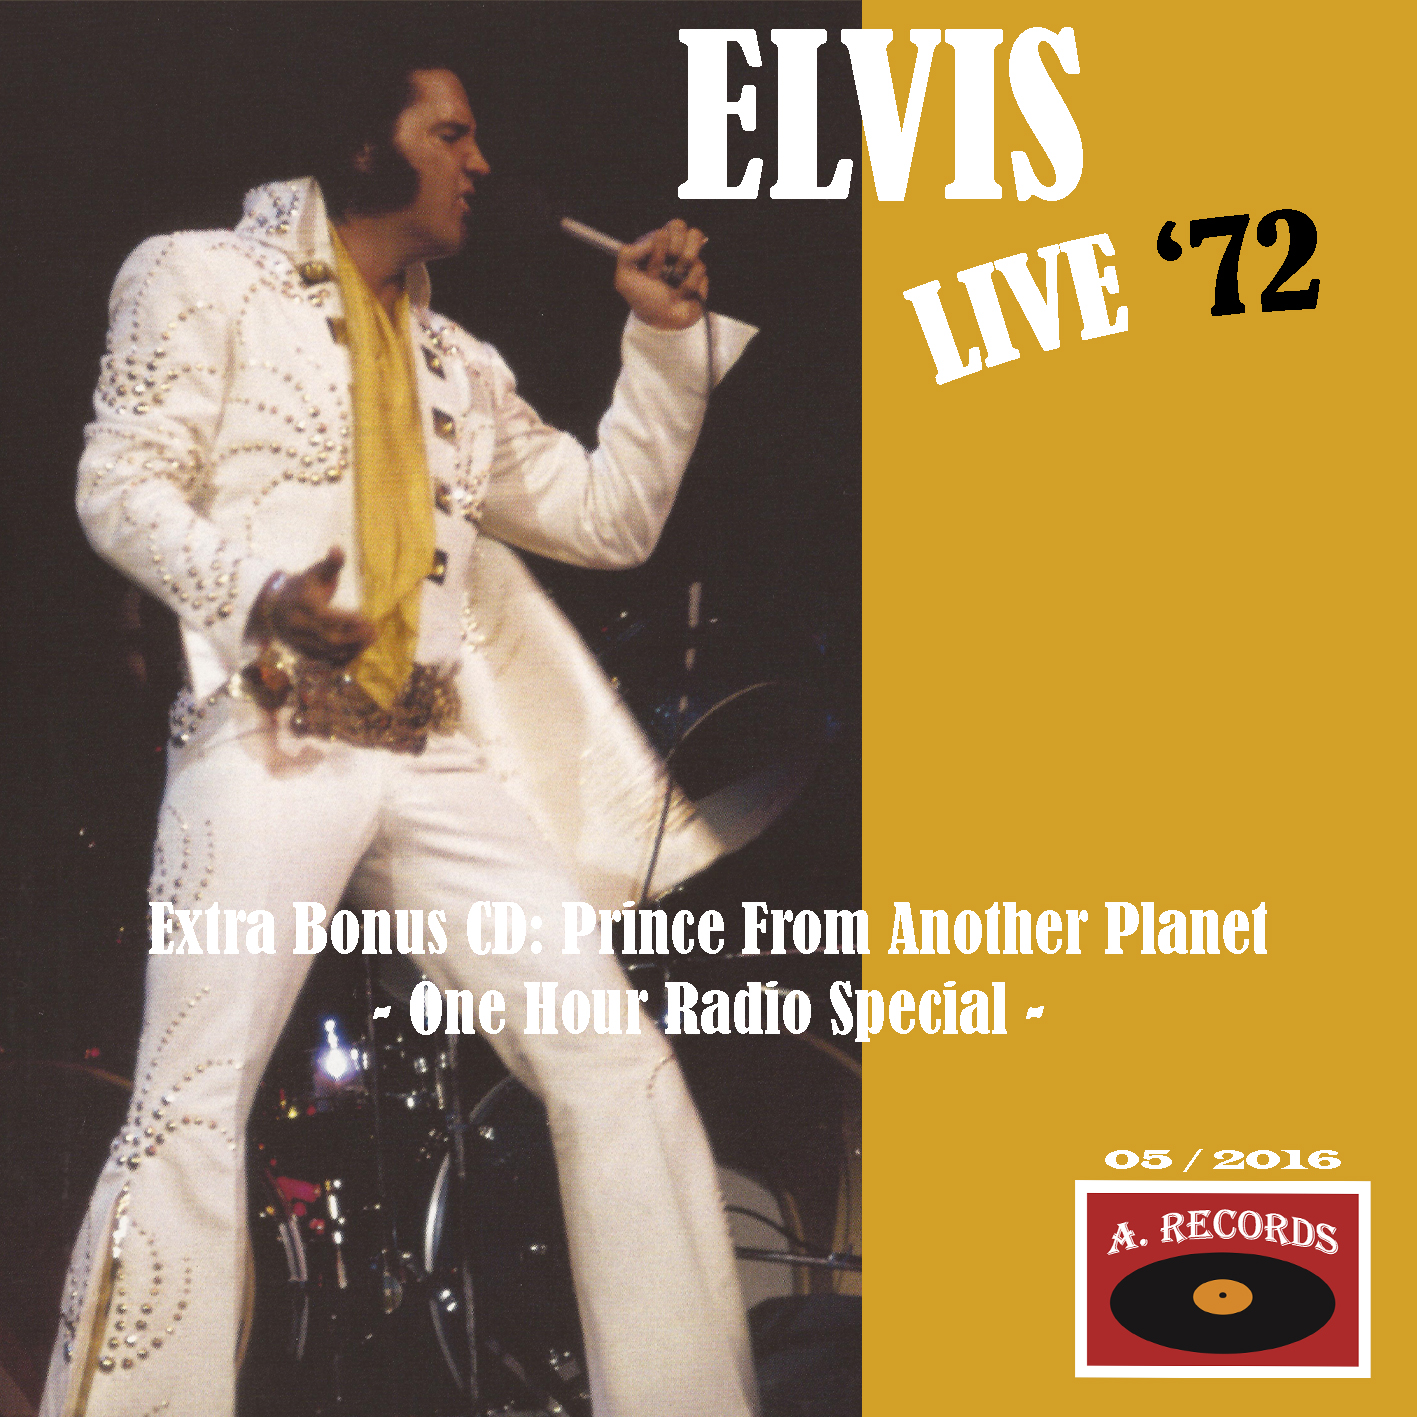 Elvis Live '72 (May 2016)